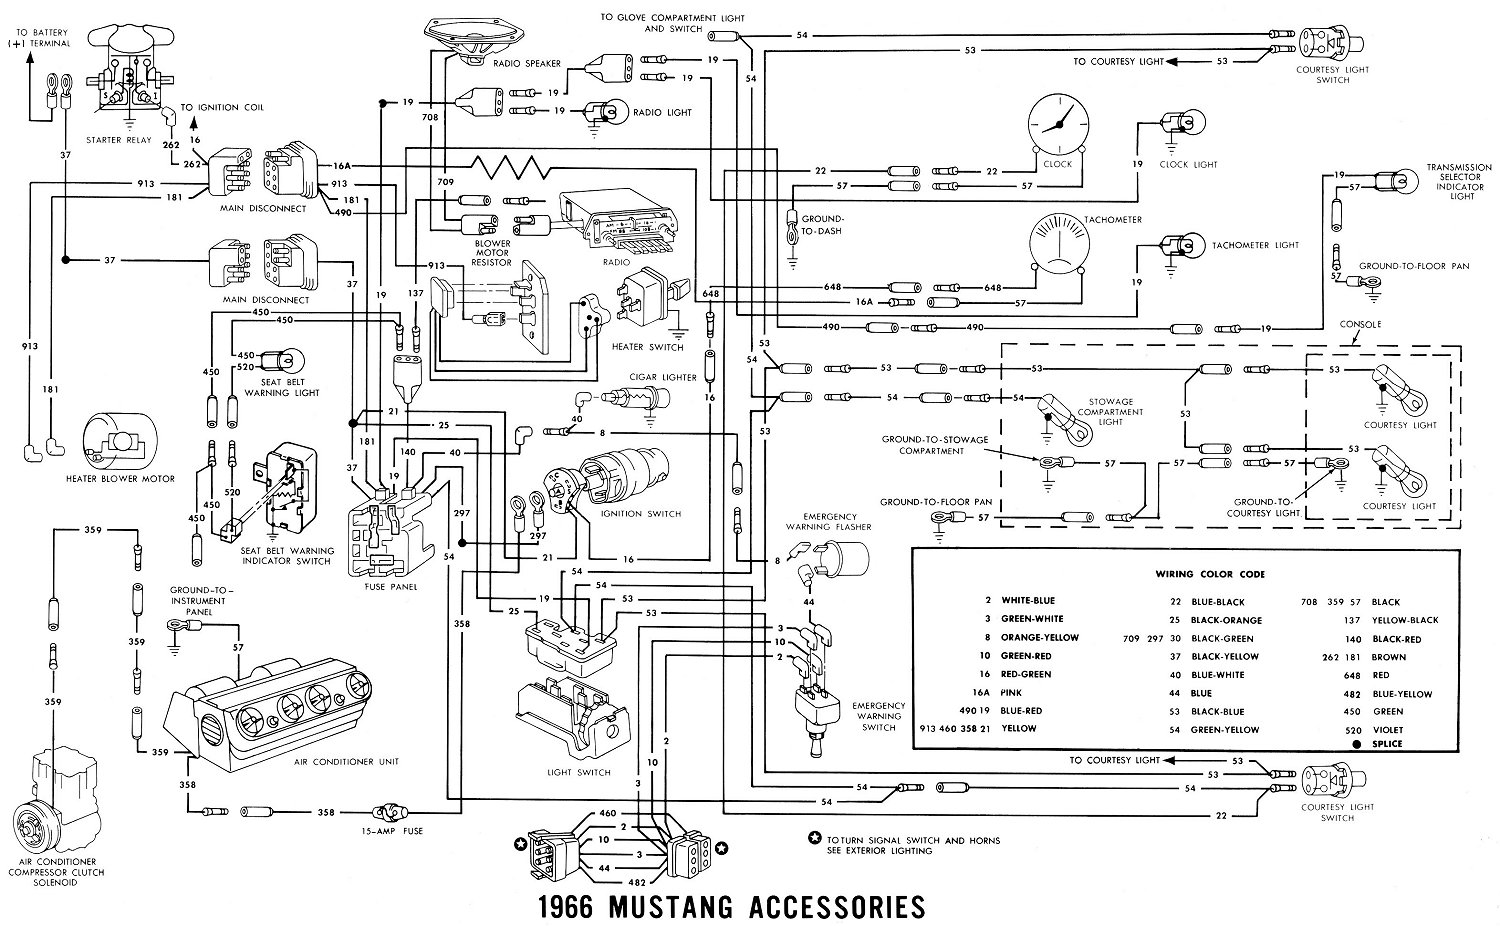 Also 1964 Ford F100 Wiring Diagram In Addition 1966 Mustang Trolling Motor 930011050 Wire Diagramtr109lfbd 36 Volt And Rh Metroagua Co